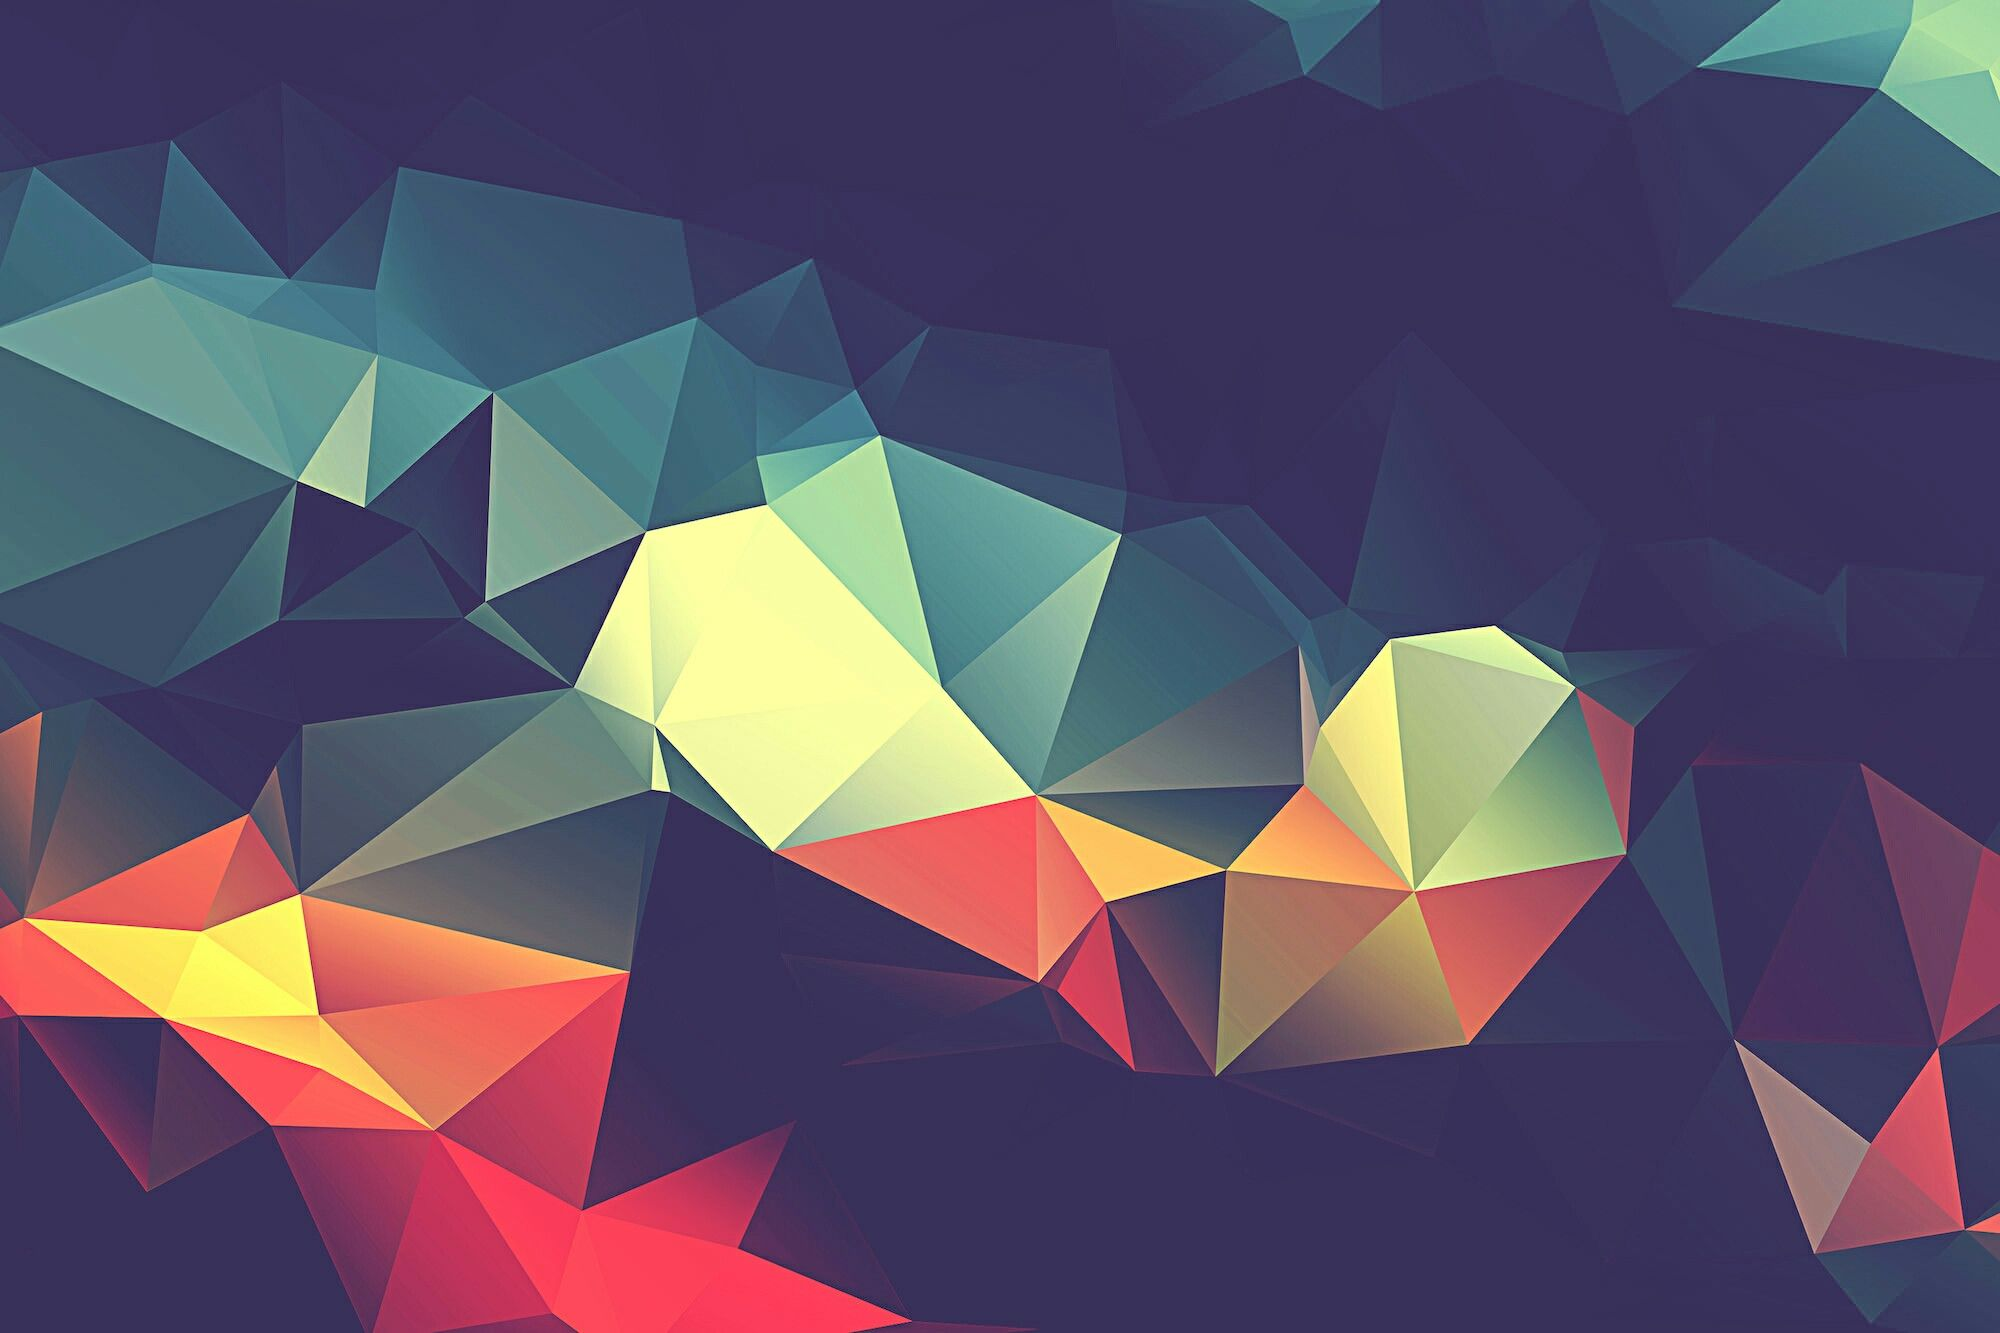 Phone Wallpaper HD Abstract iphone wallpaper, Abstract